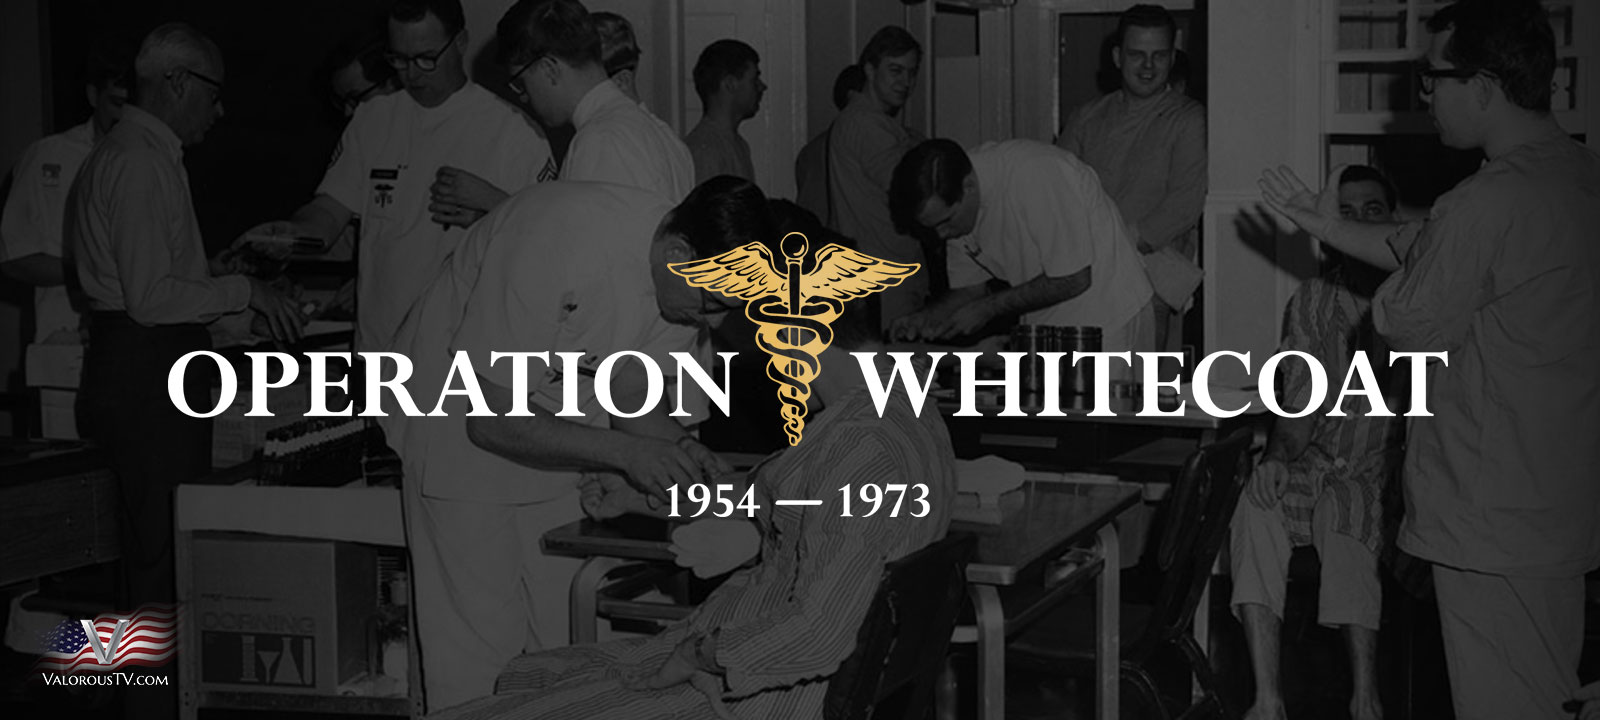 OperationWhitecoat-WebsiteSliderArtwork